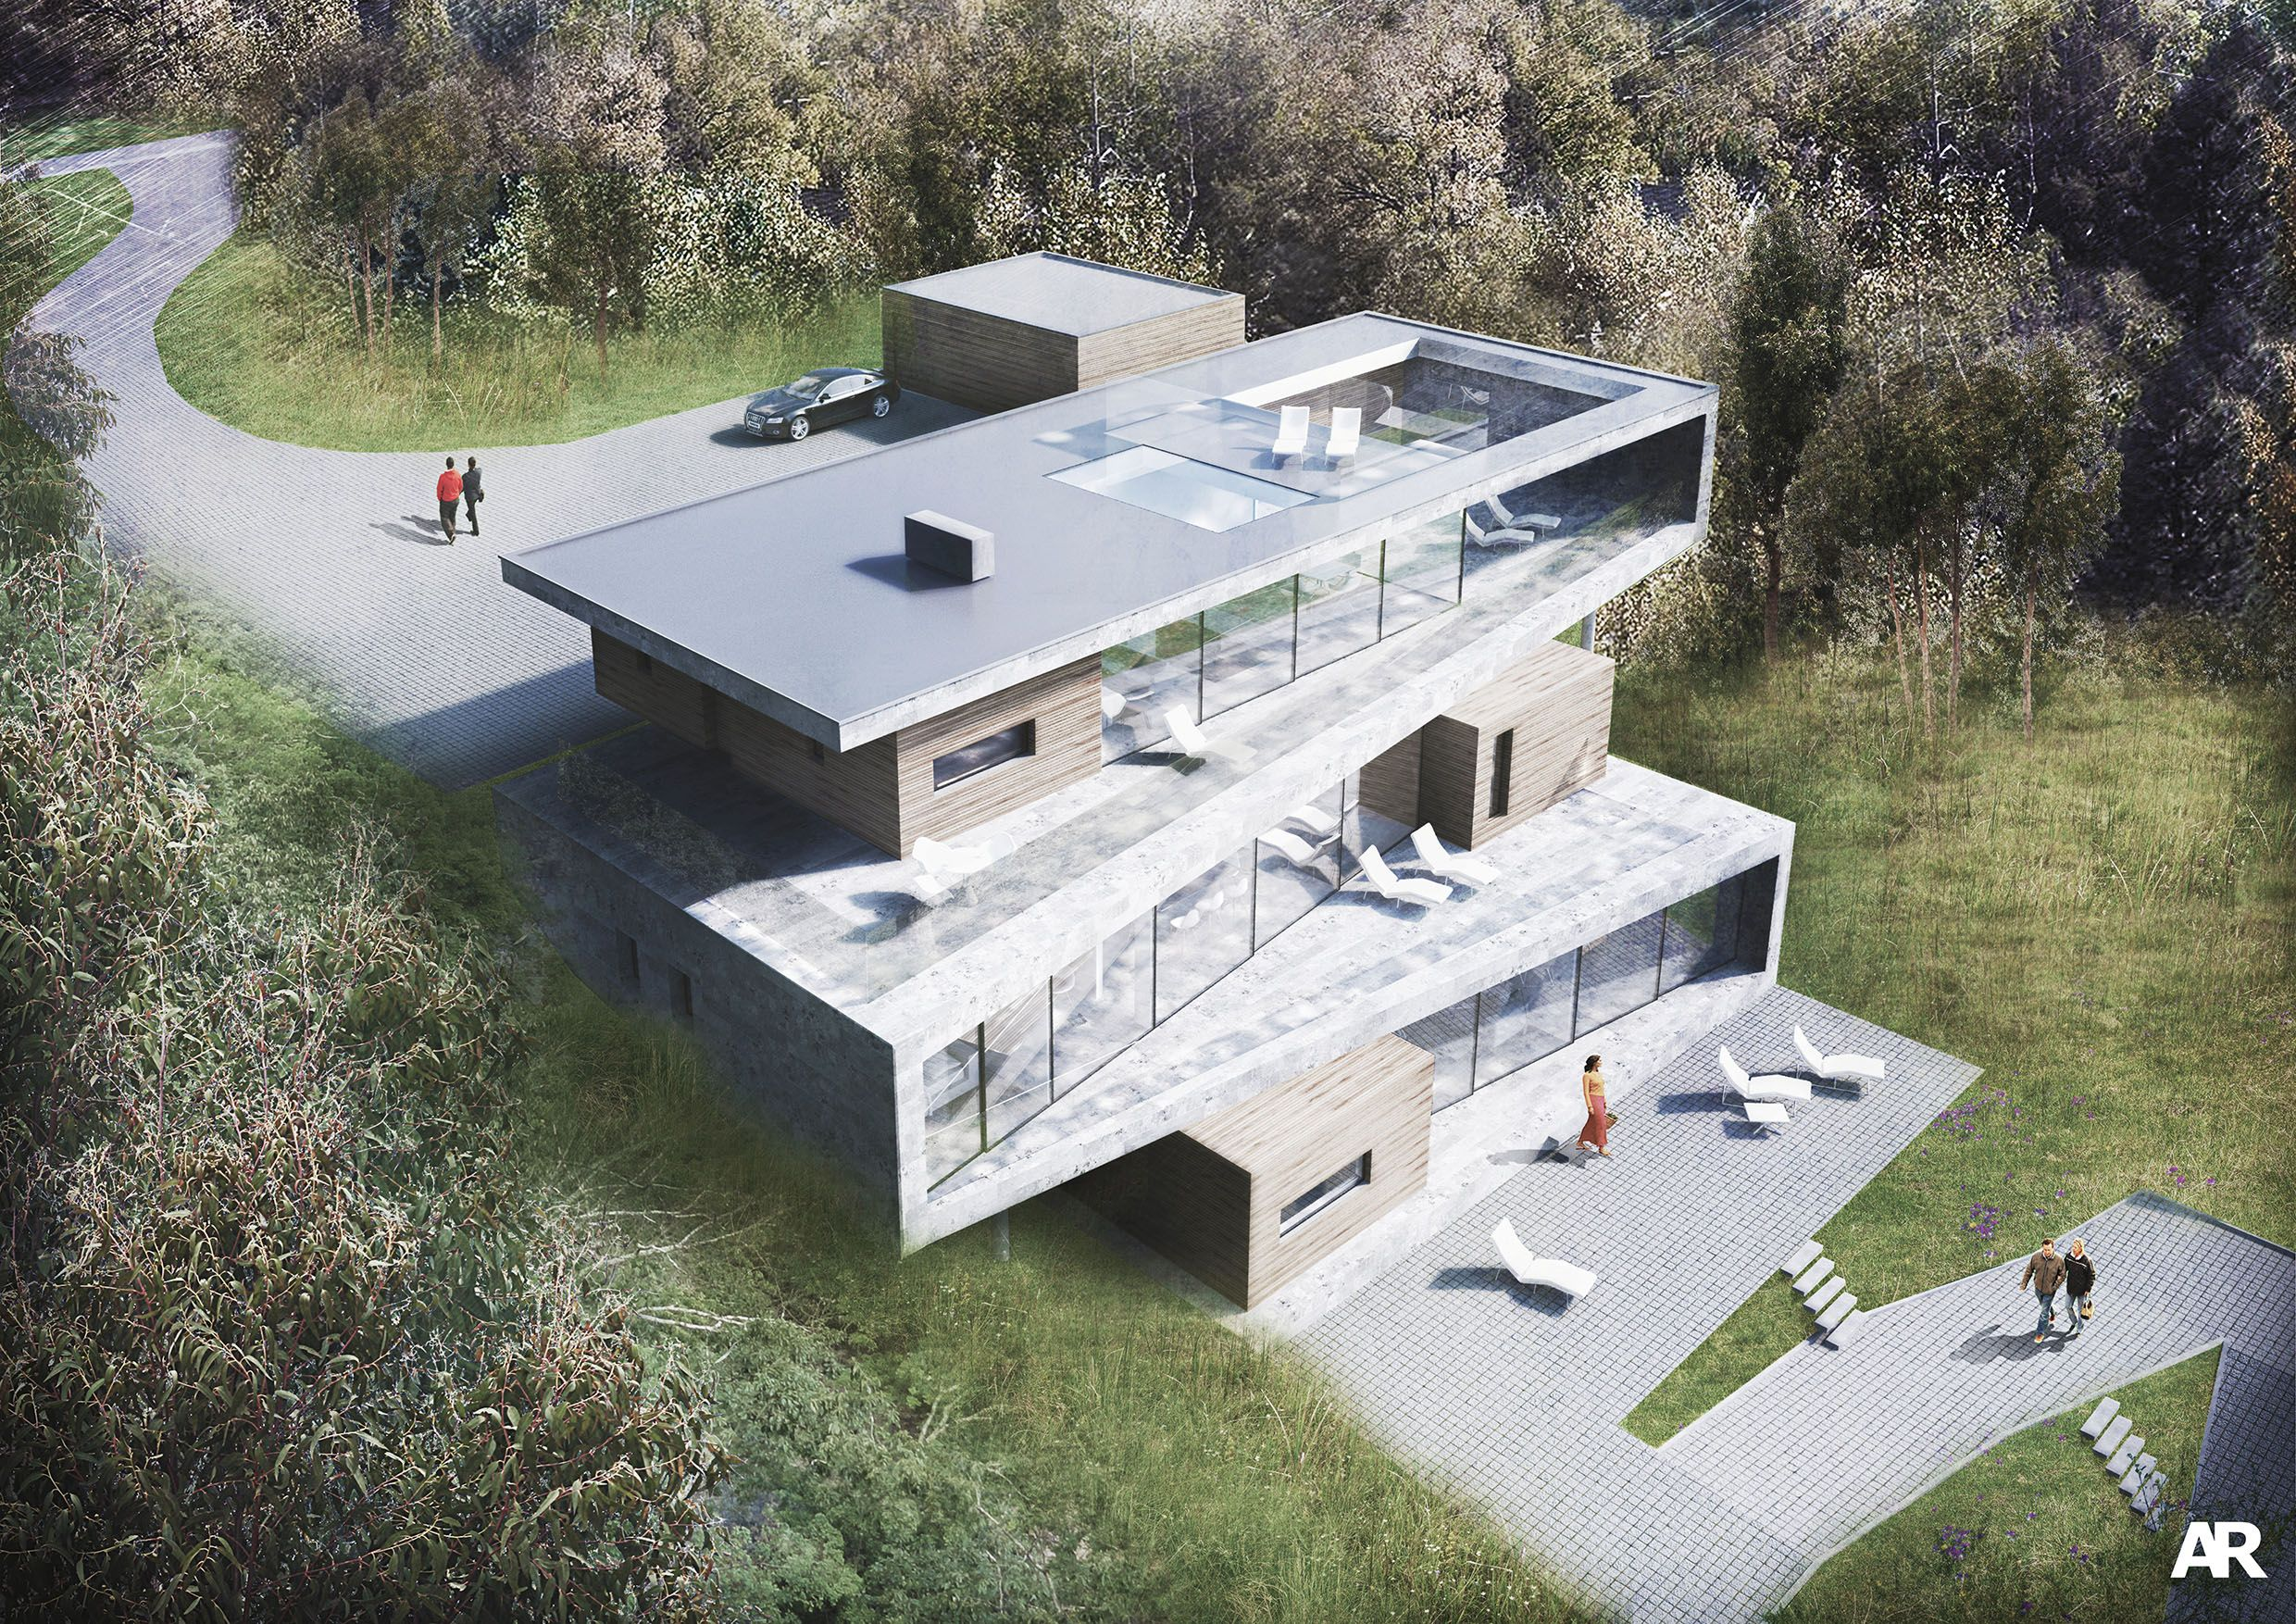 Hampshire based modern architects, AR Design Studio have designed a highly contemporary home. The bold form extends down the slope with inserted timber elements.